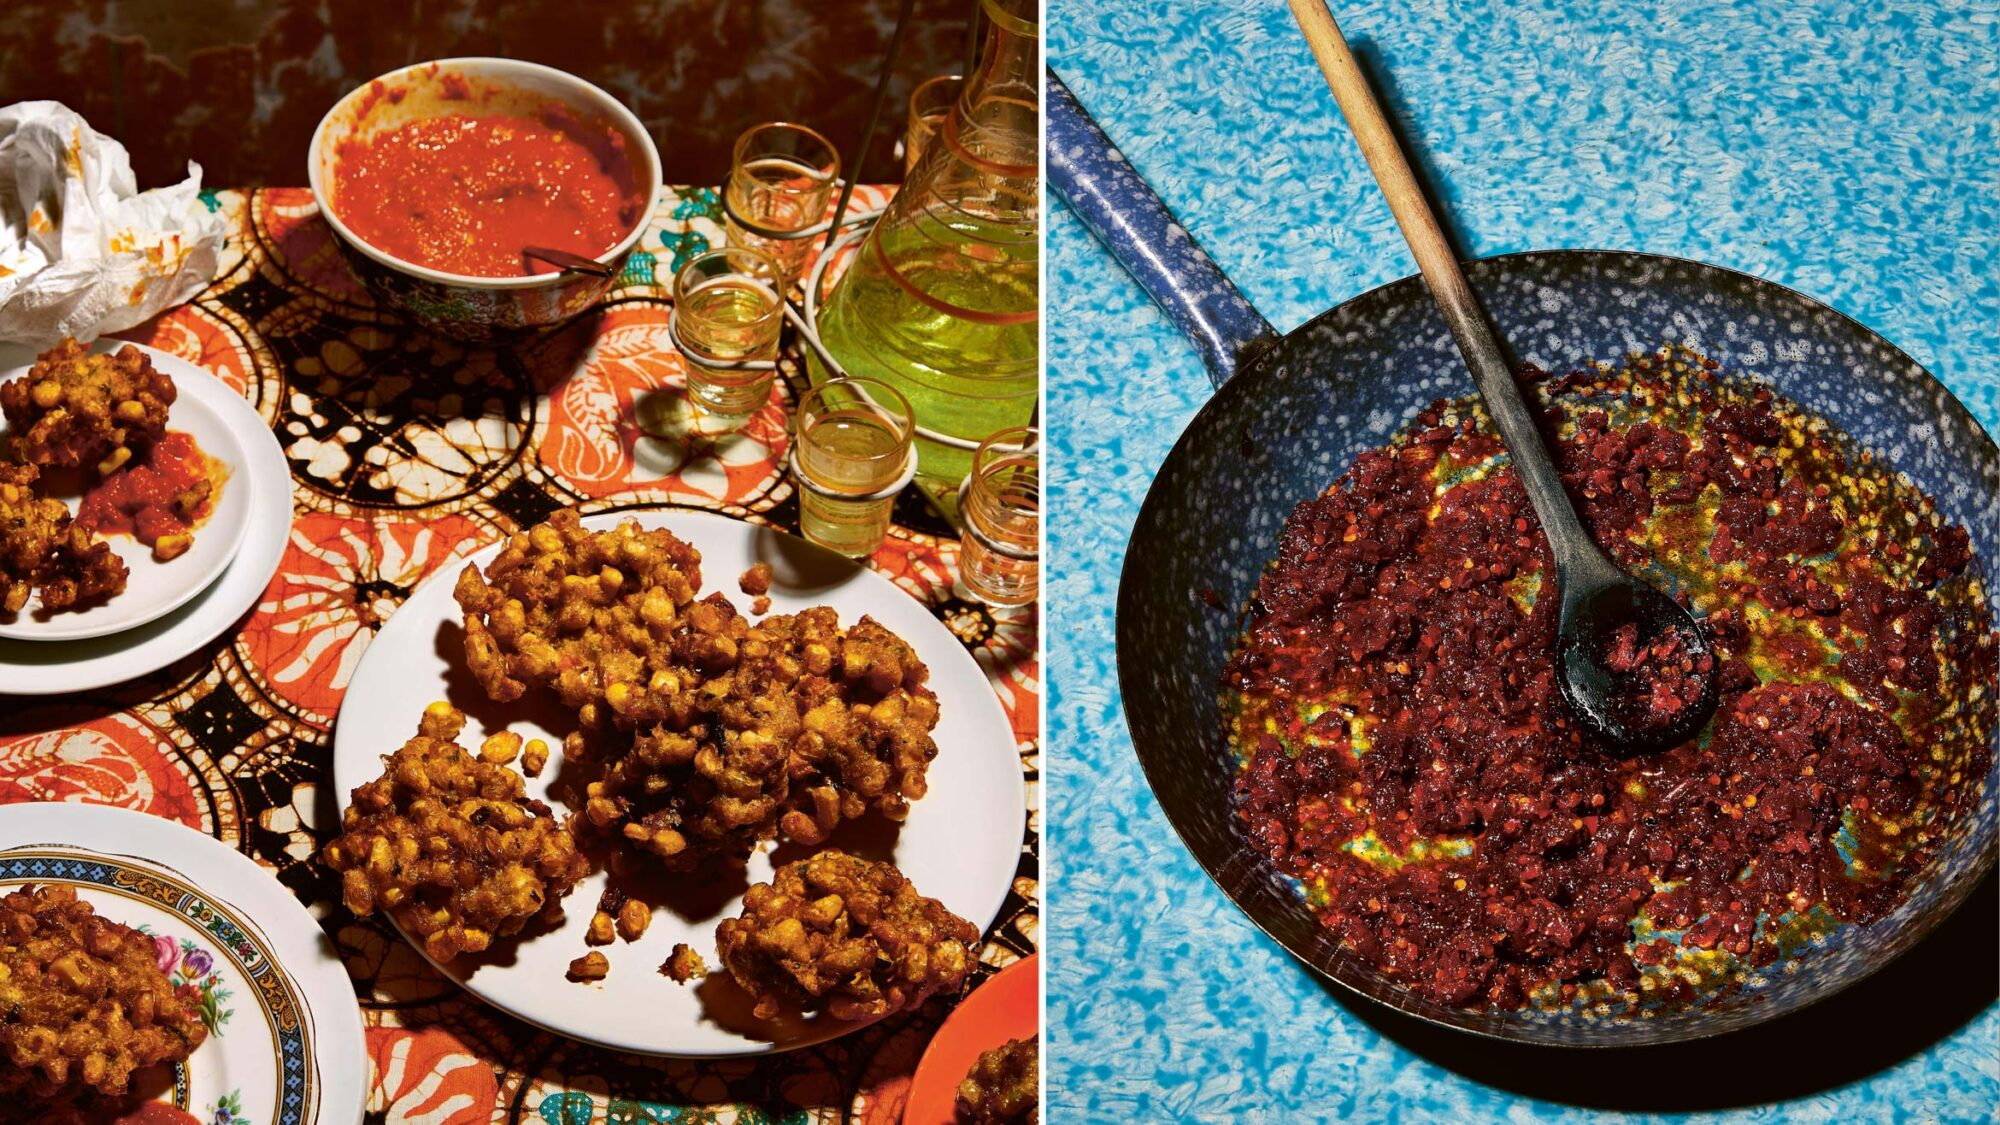 Article-Lara-Lee-Coconut-and-Sambal-Recipes-from-My-Indonesian-Kitchen